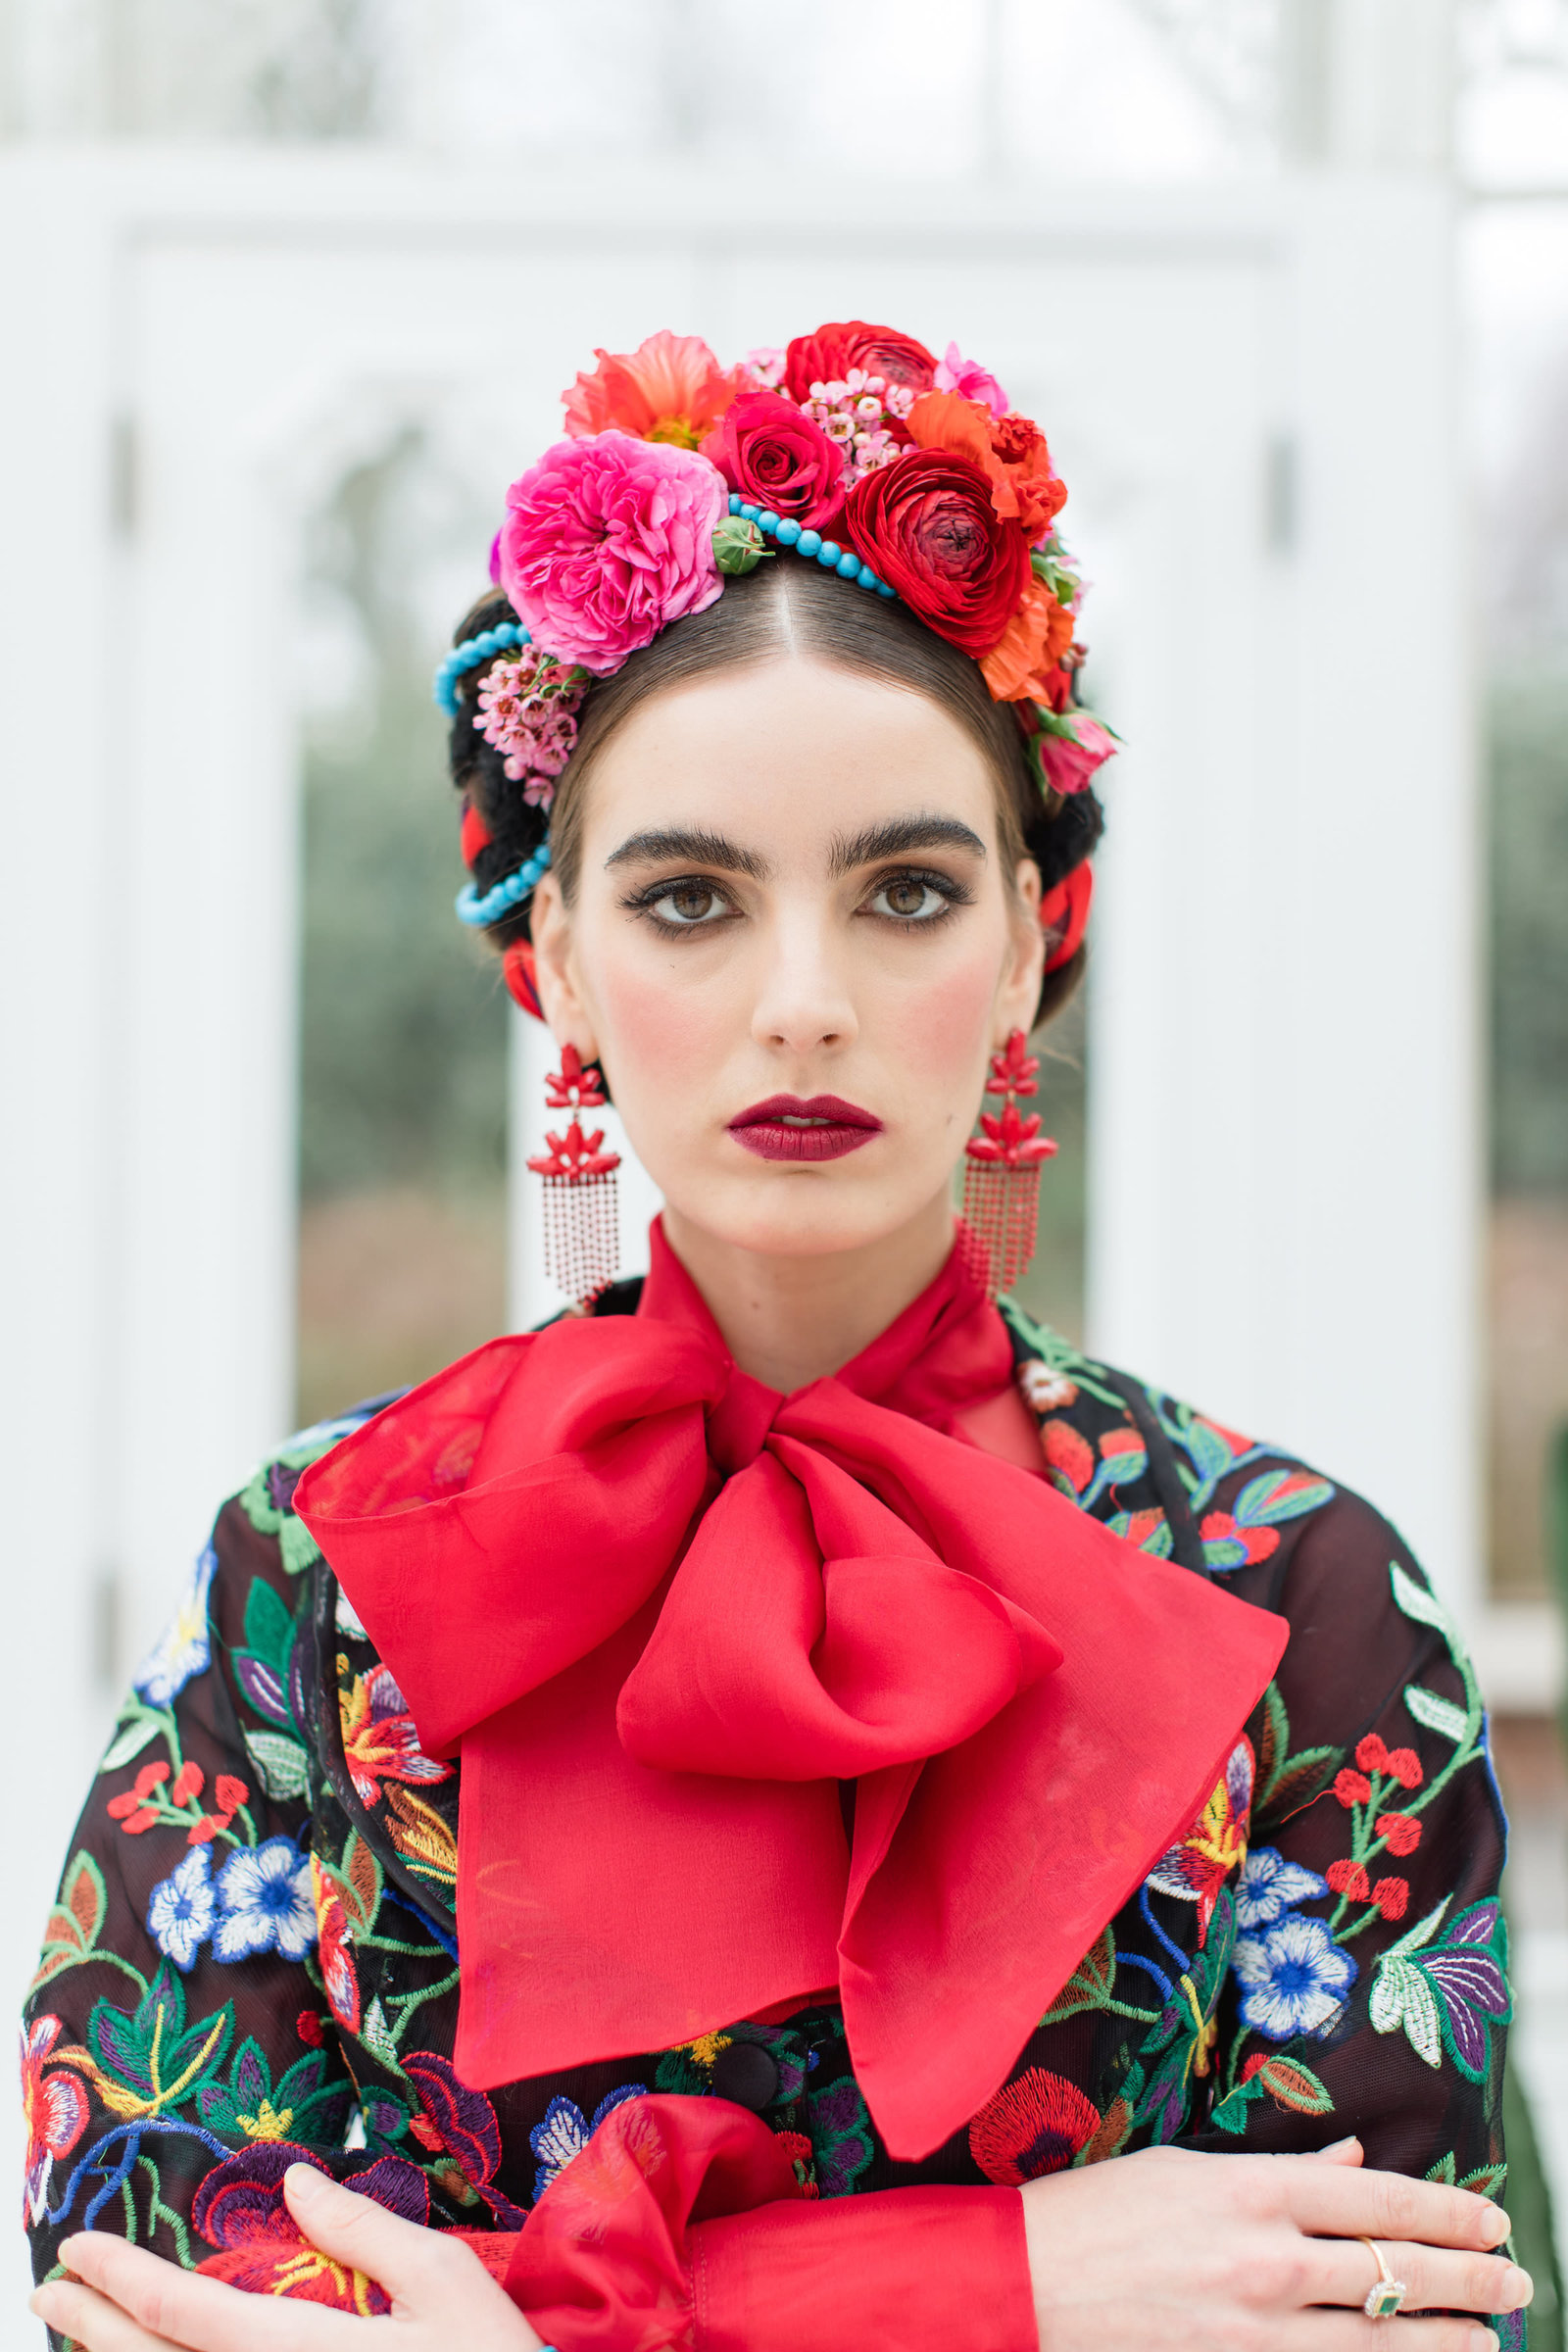 Frida-Kahlo-inspired-Mariachi-embroidered-flower-jacket-JoanneFlemingDesign-RobertaFacchiniPhoto (2)